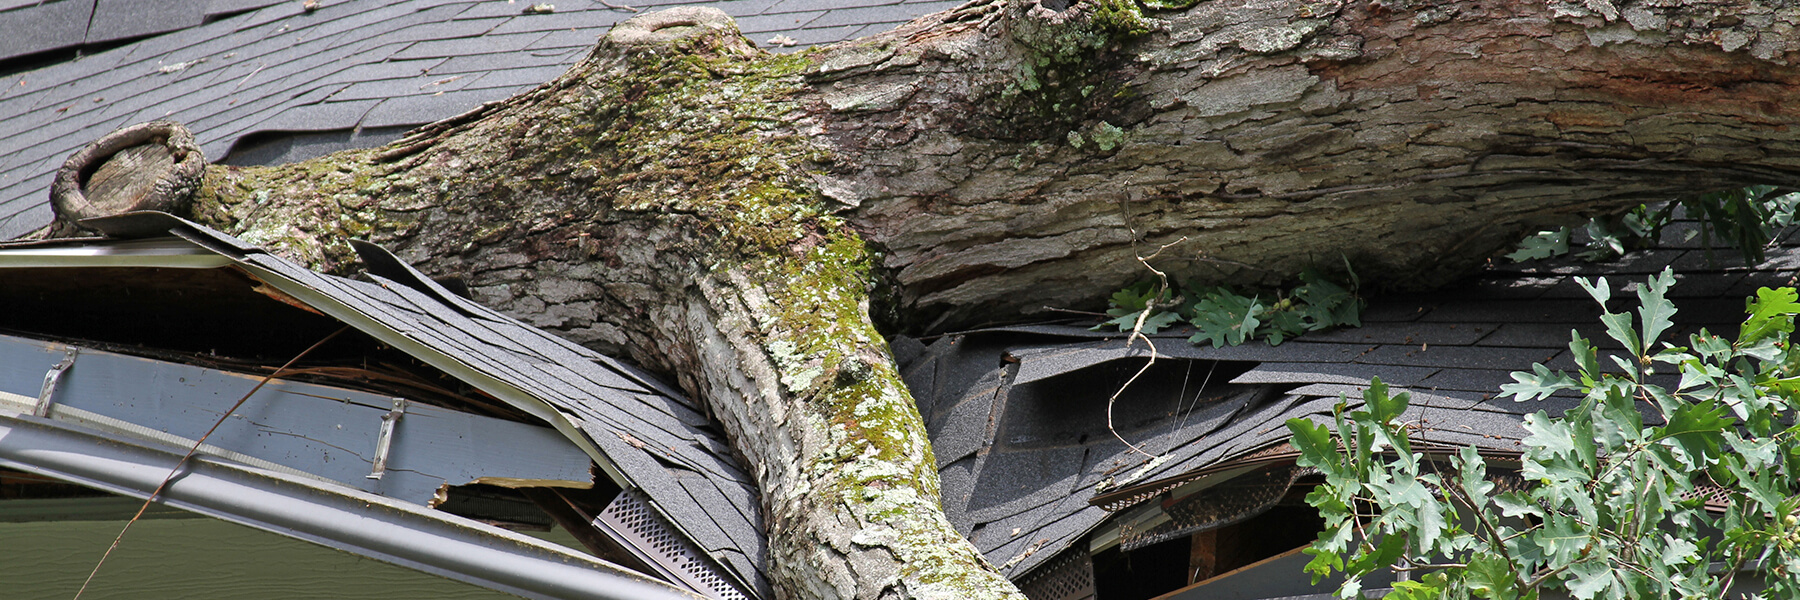 Dealing with Storm Damage and Insurance Claims in Florida